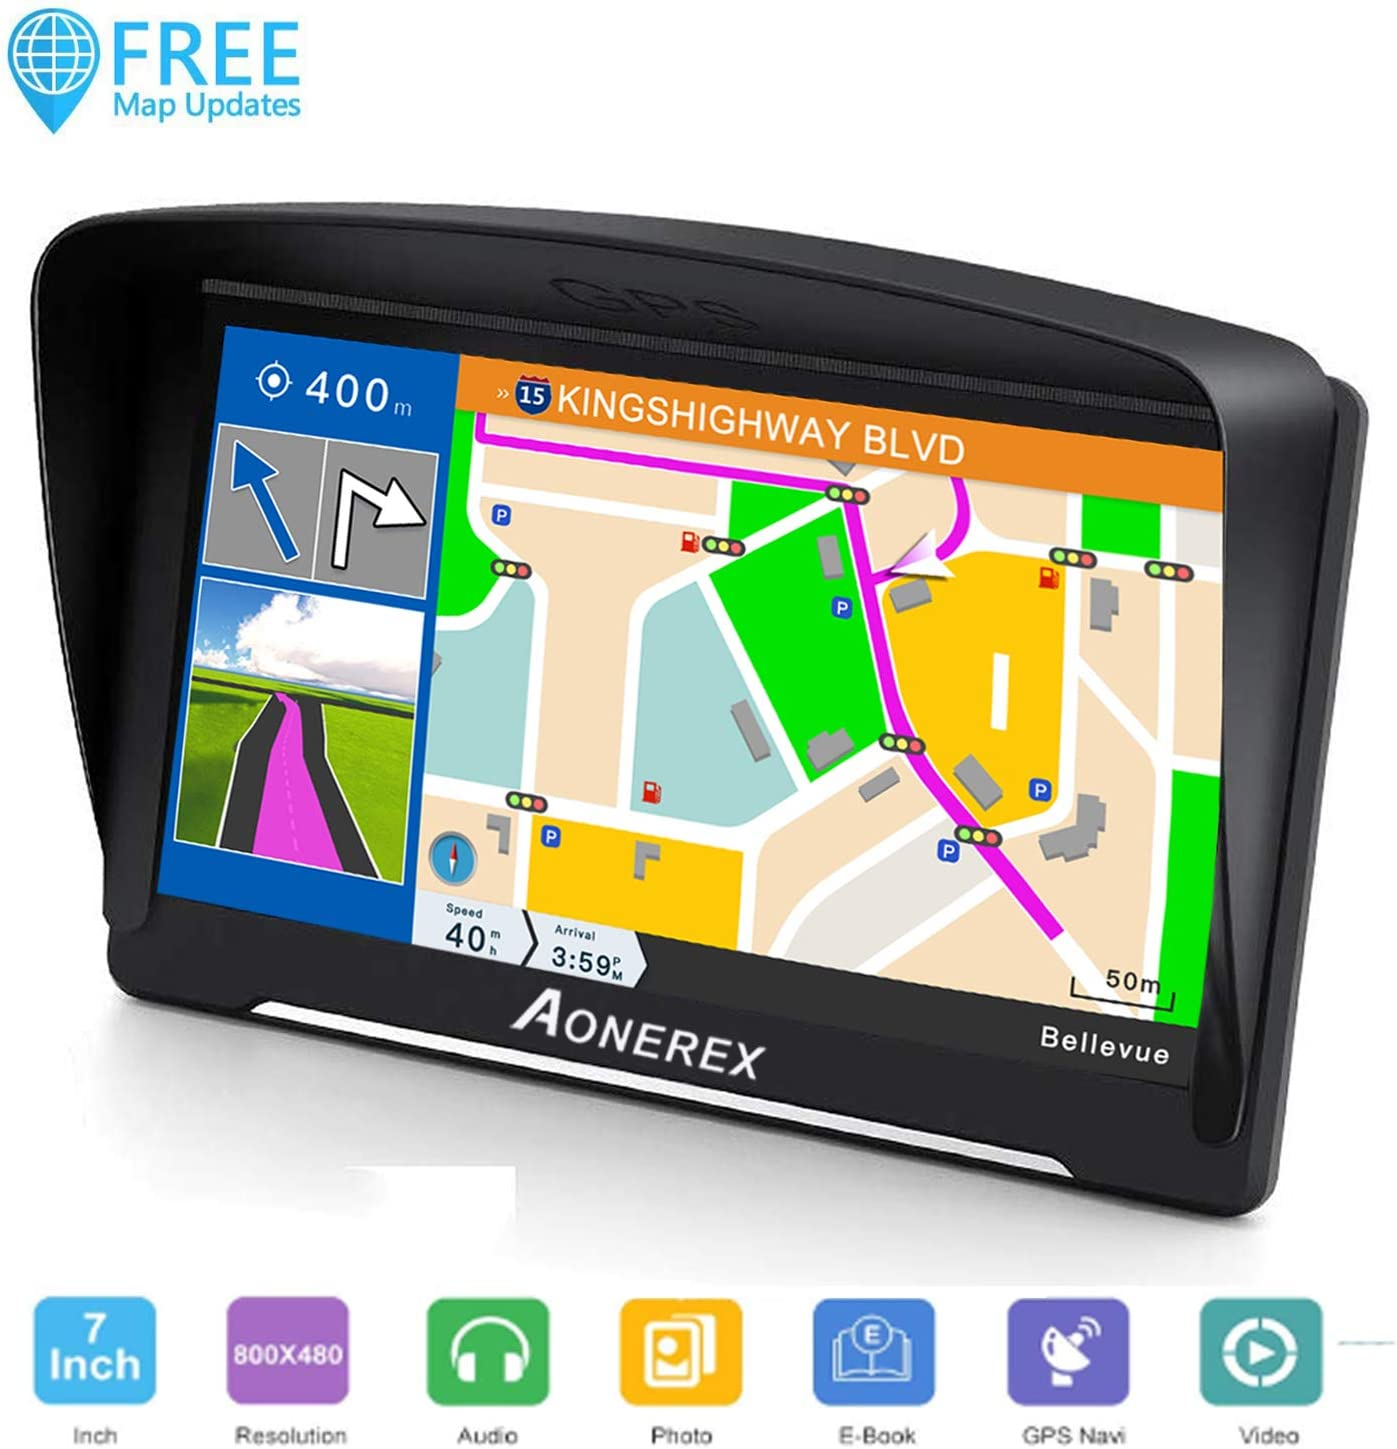 SAT NAV, 7 inch HD Capacitive Touch Screen GPS Navigation System with 8G Memory 2020 Upgraded Version Attach Sunshade,Free Lifetime Maps